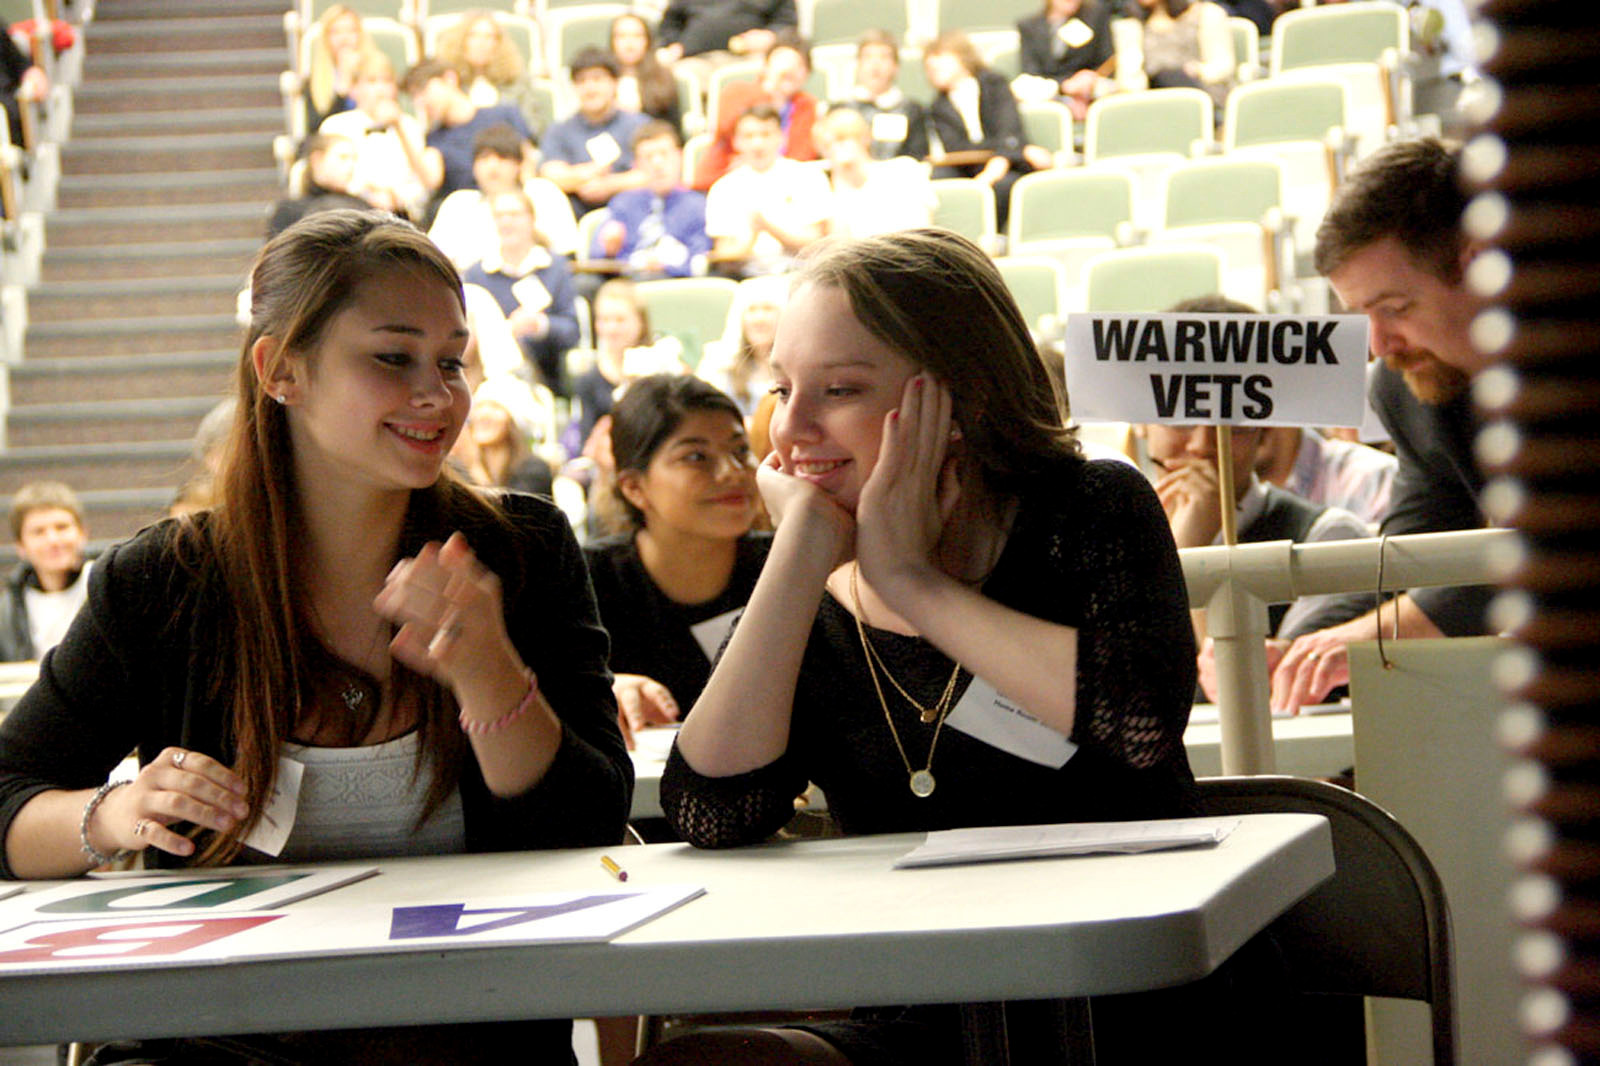 WINNING SMILES: Vets team members Casidy Melo and Cailey Noble share a smile after correctly answering a question in the Rhode Island Academic Decathlon Super Quiz Sunday.